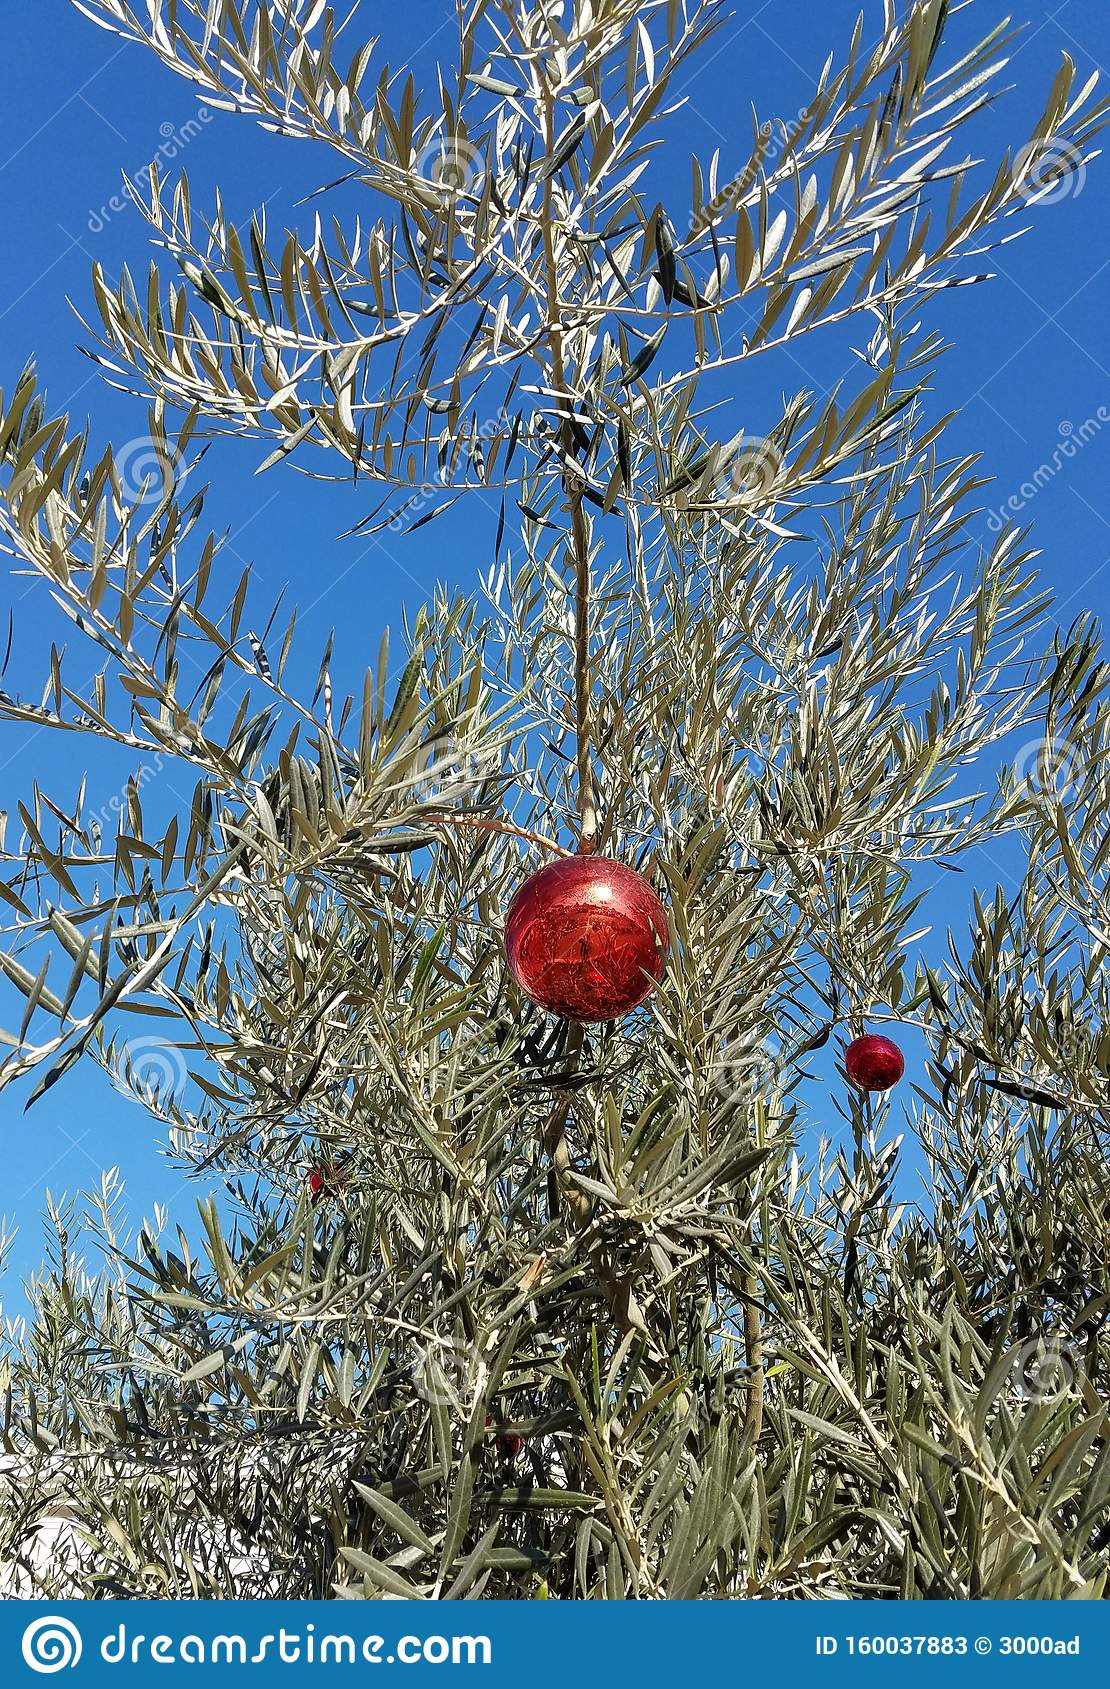 Olive Tree With Christmas Decorations Stock Image Image Of Globe Unusual 160037883